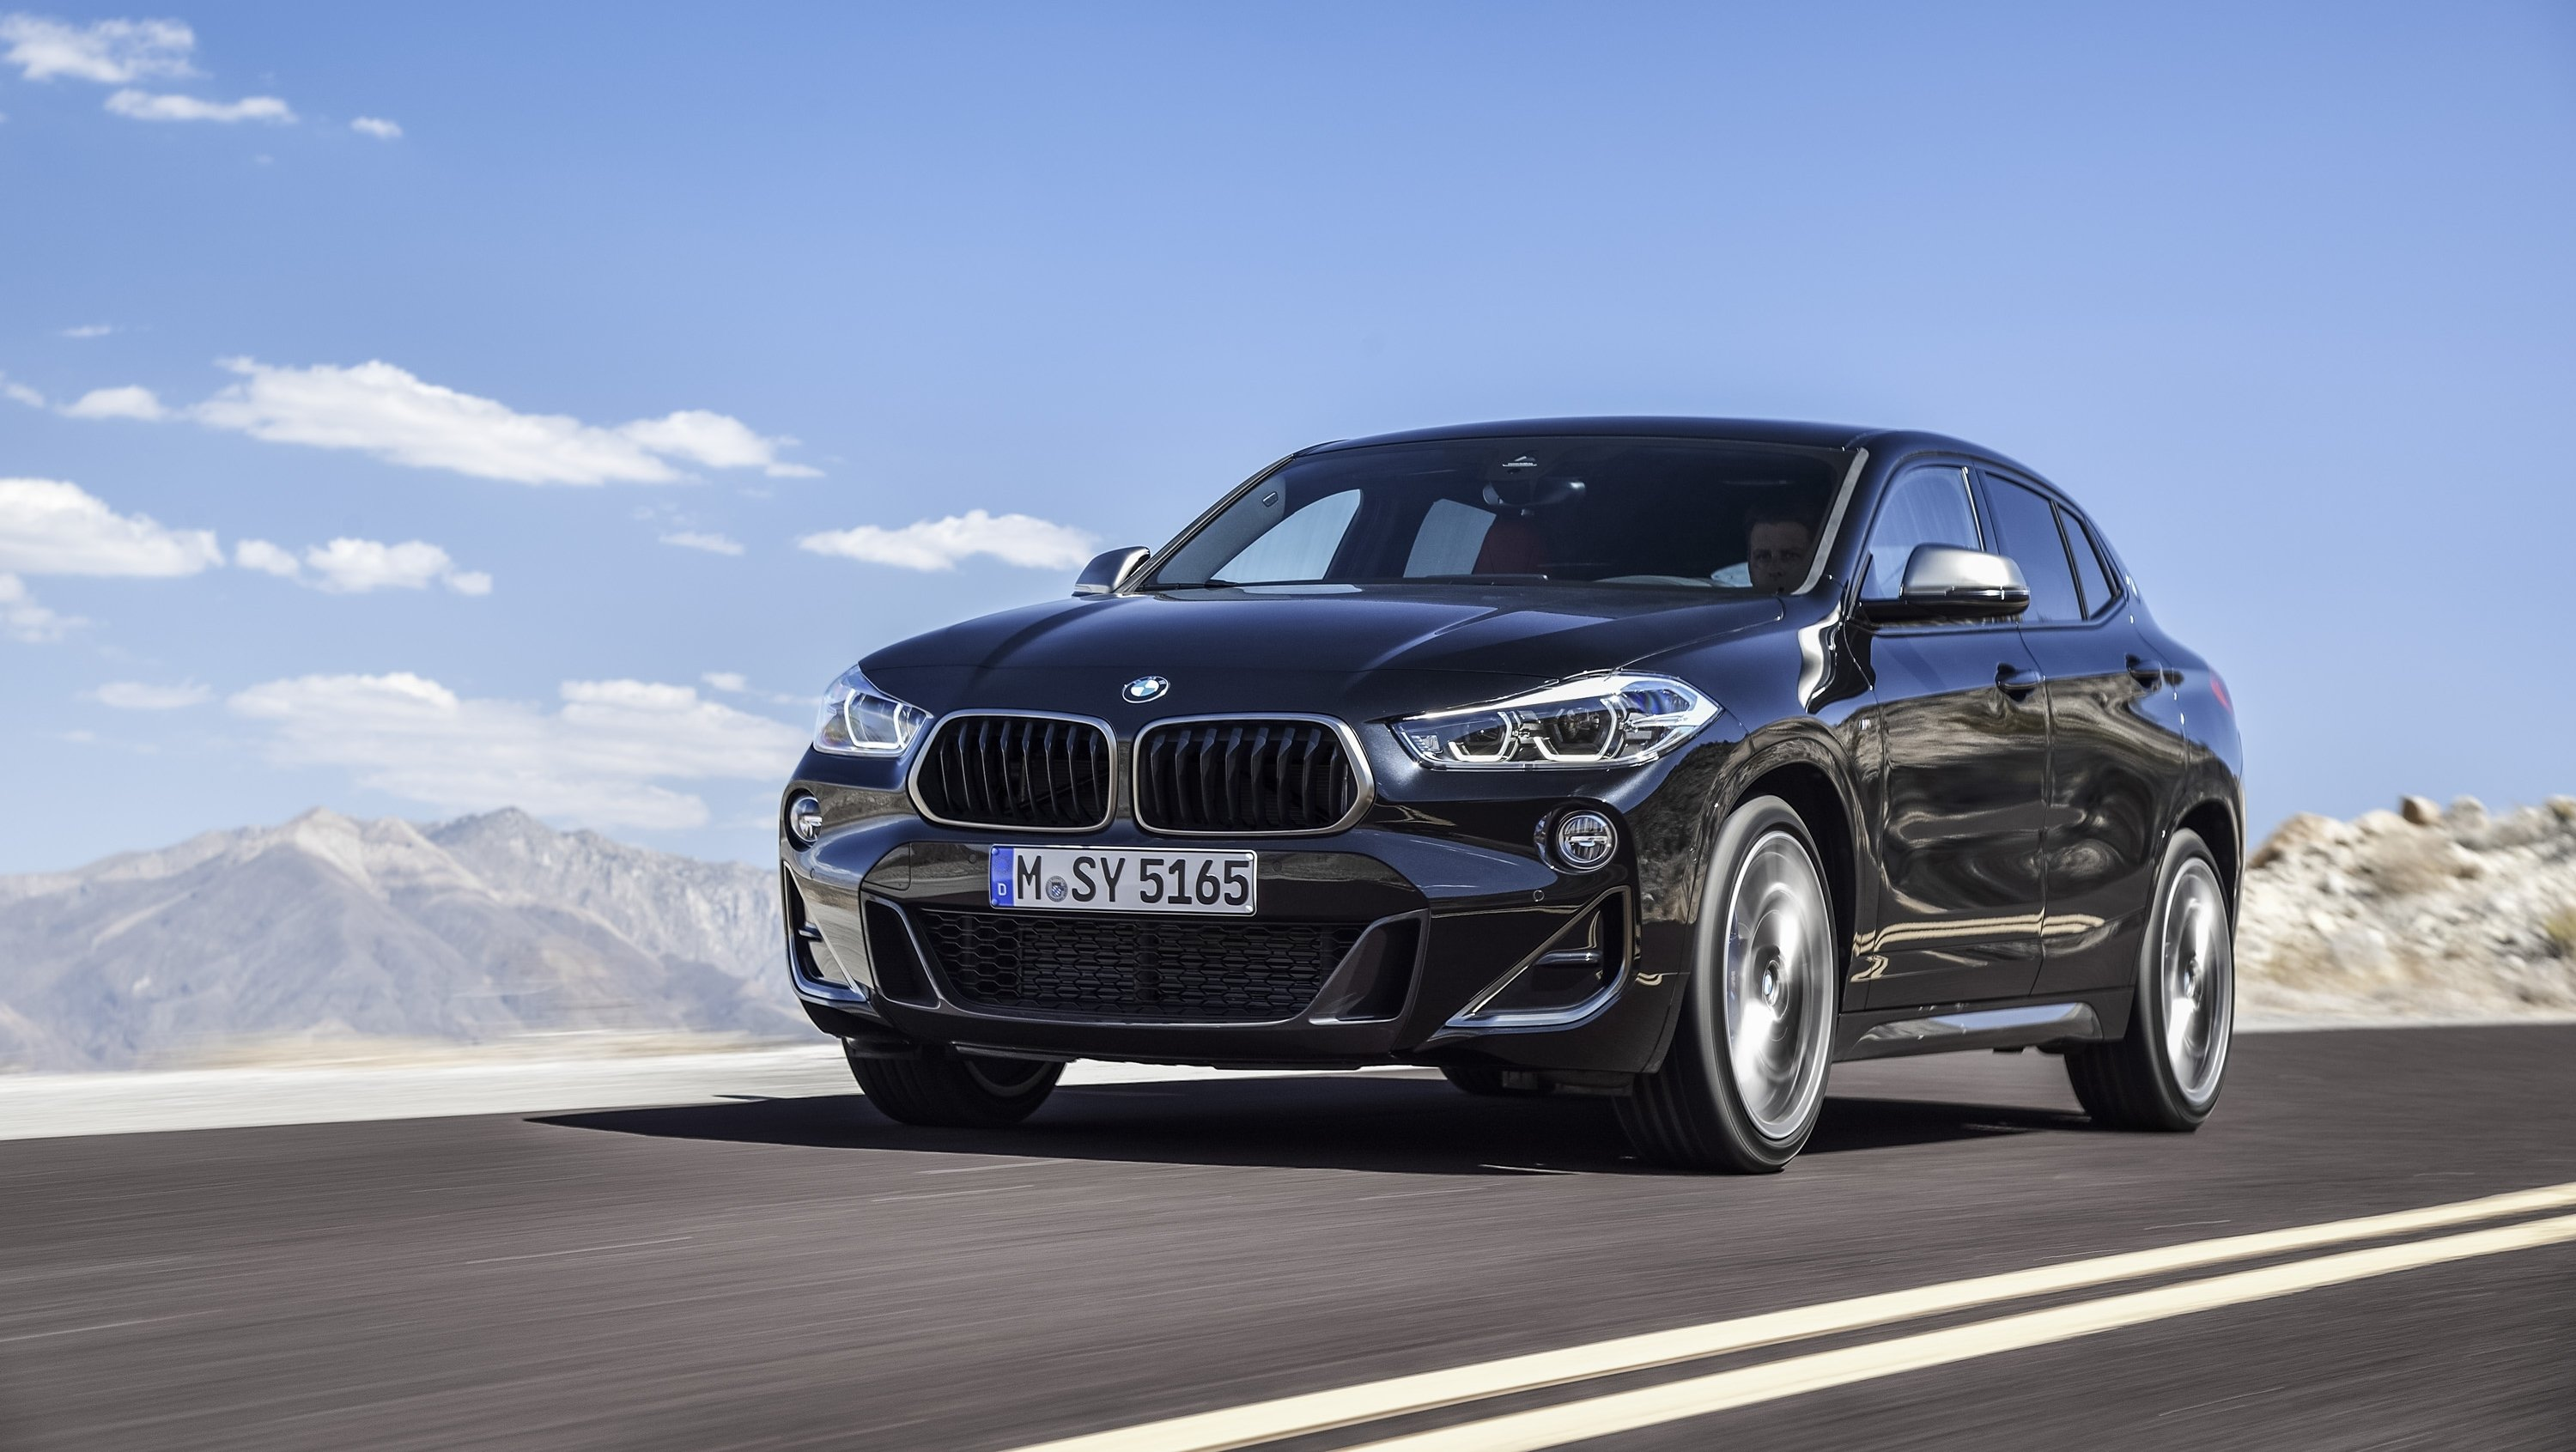 Bmw X2 M35i Launched With The Company S Most Powerful Four Cylinder Yet Top Speed Howldb